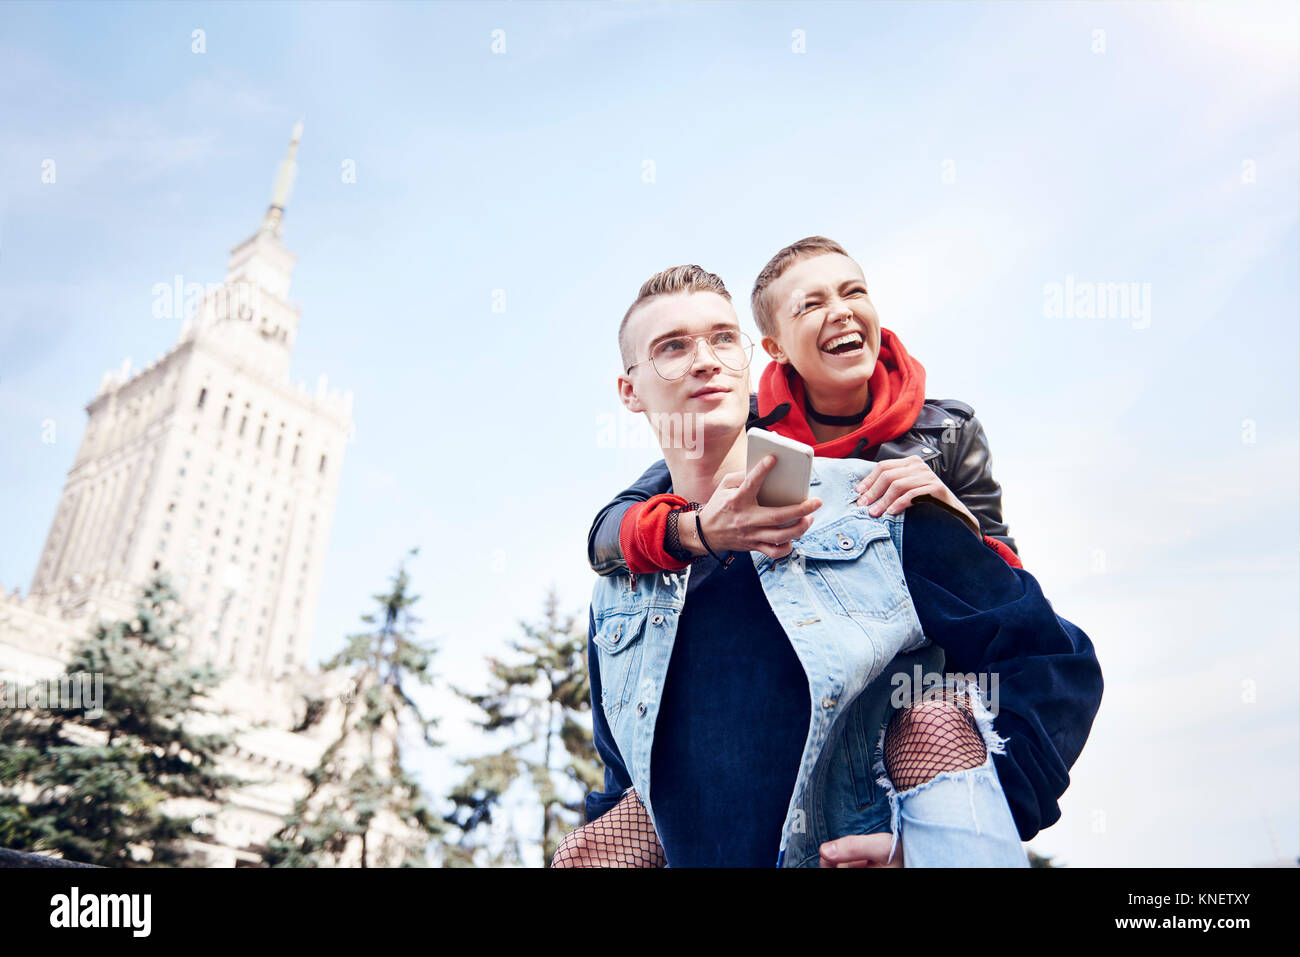 Young man giving laughing girlfriend a piggy back in city - Stock Image